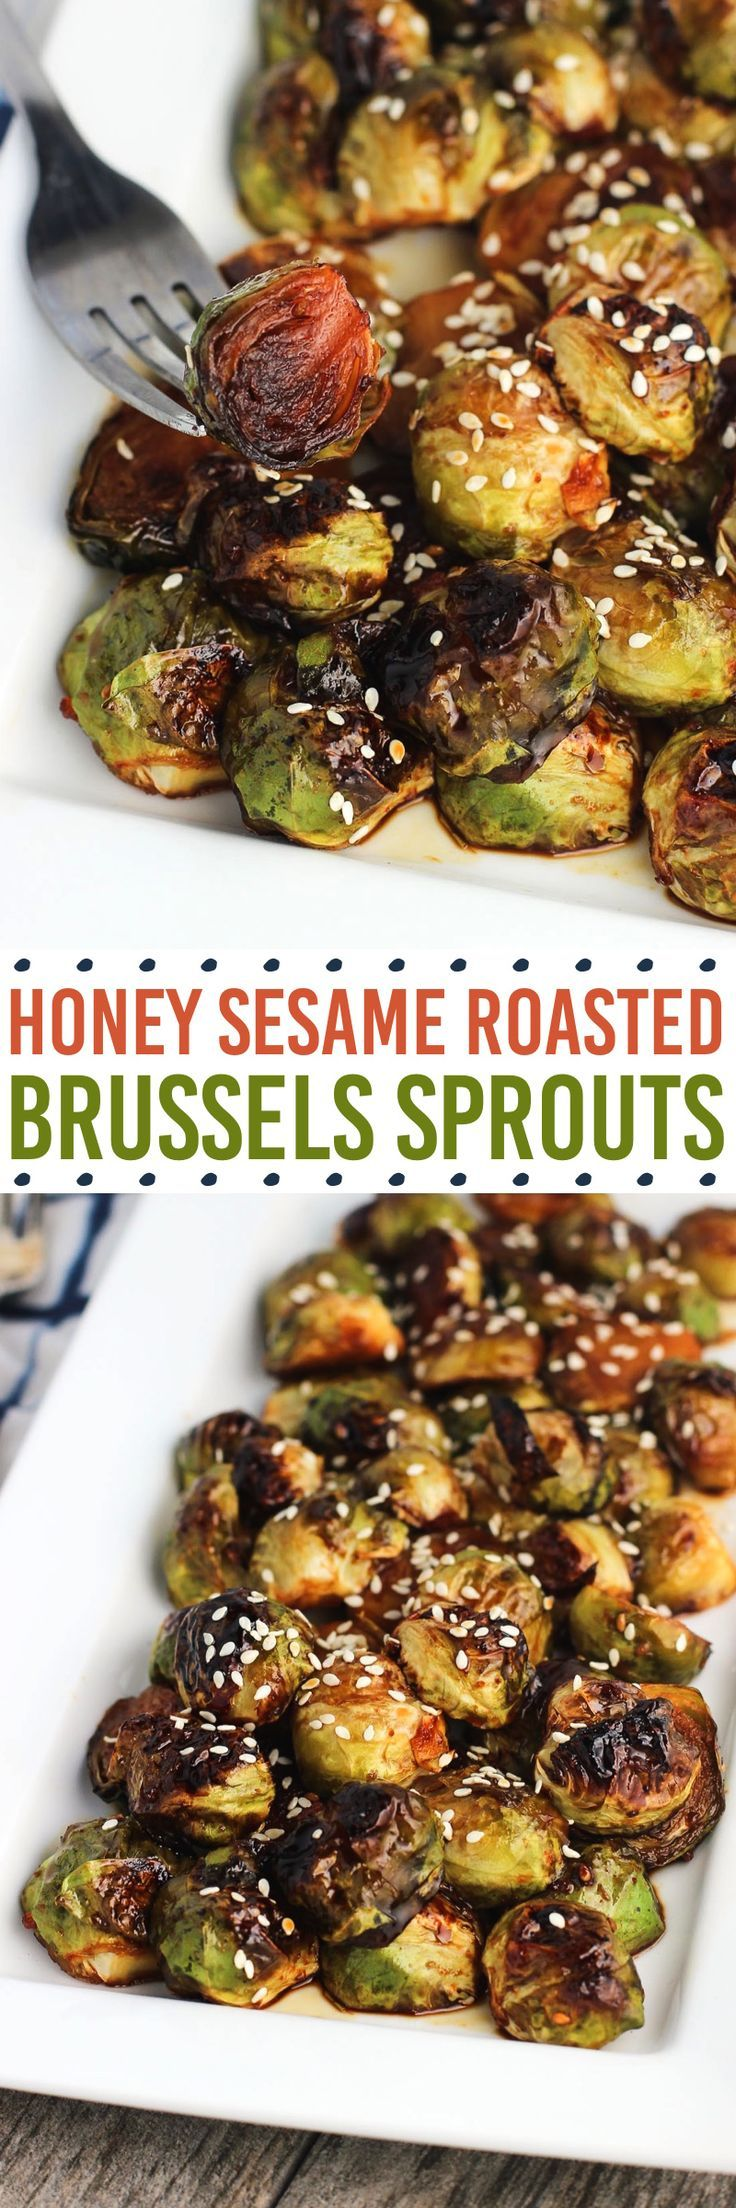 Honey Sesame Roasted Brussels Sprouts are a flavorful side dish with an easy, five-ingredient glaze.